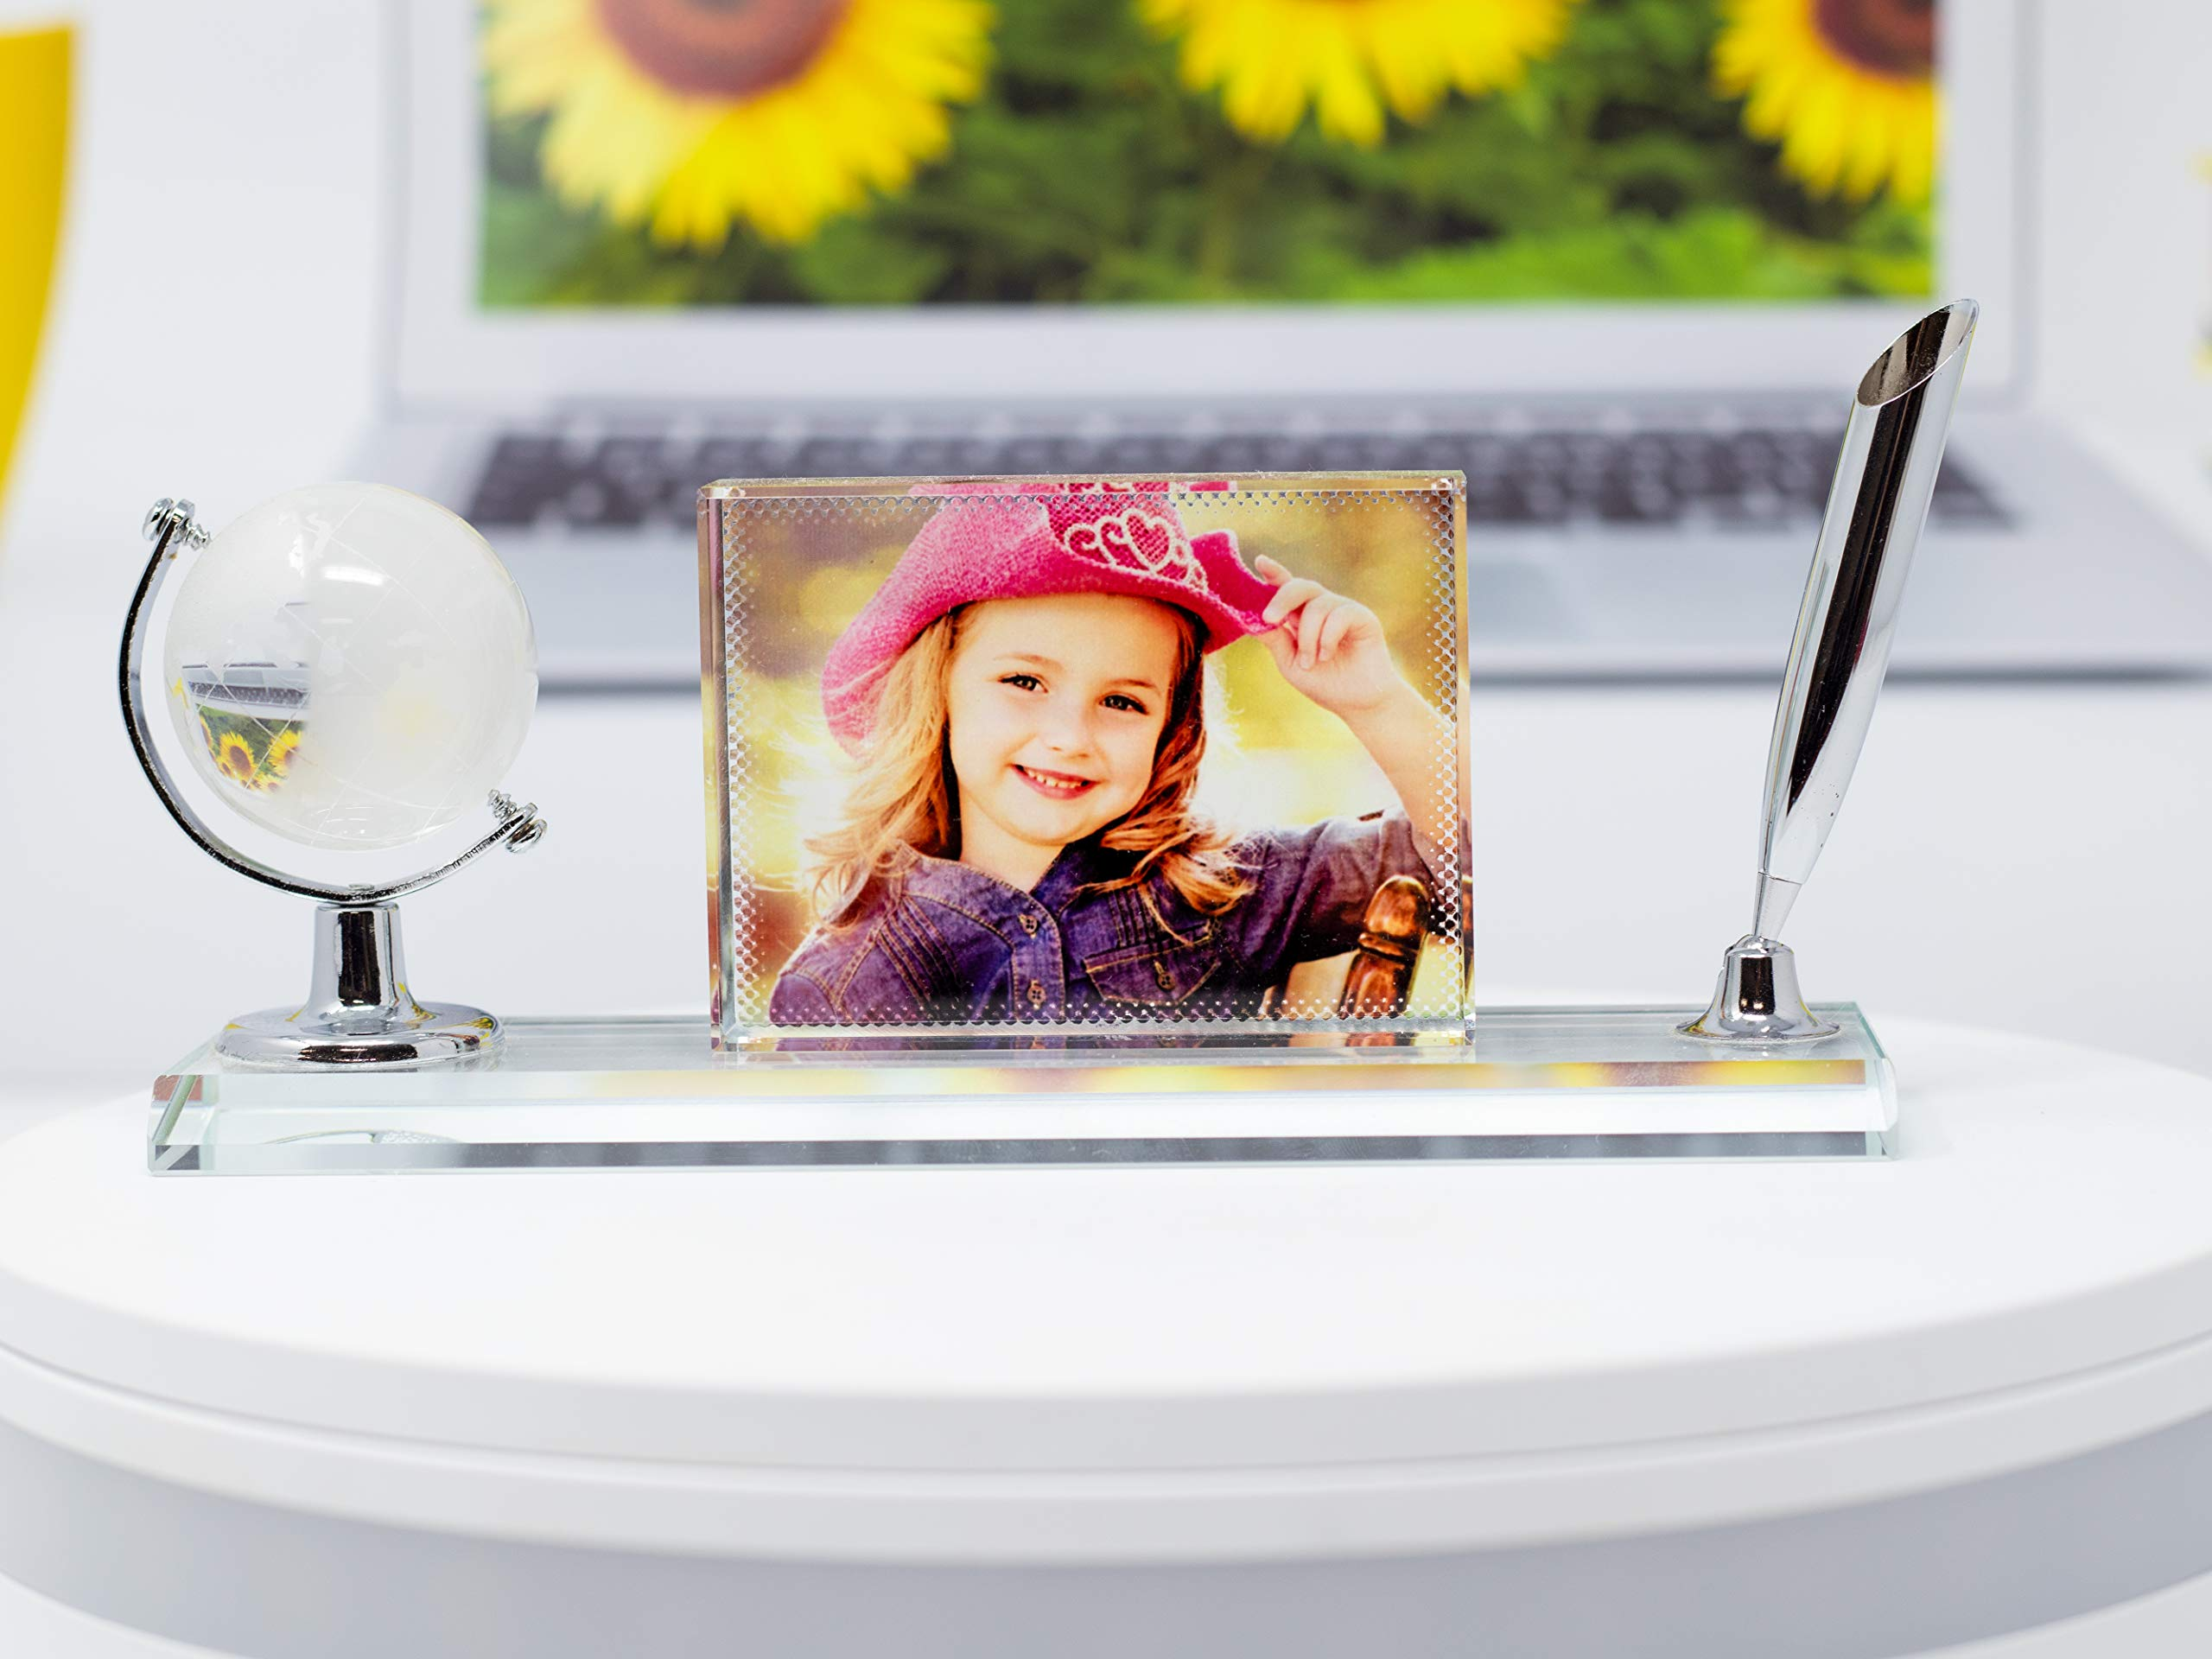 P&L ART. Crystal Print with Your Photo, Office Desktop Decor Personalized Picture Gift On Glass Clear Frame with Globe and Pen Holder, 7x3 Inches